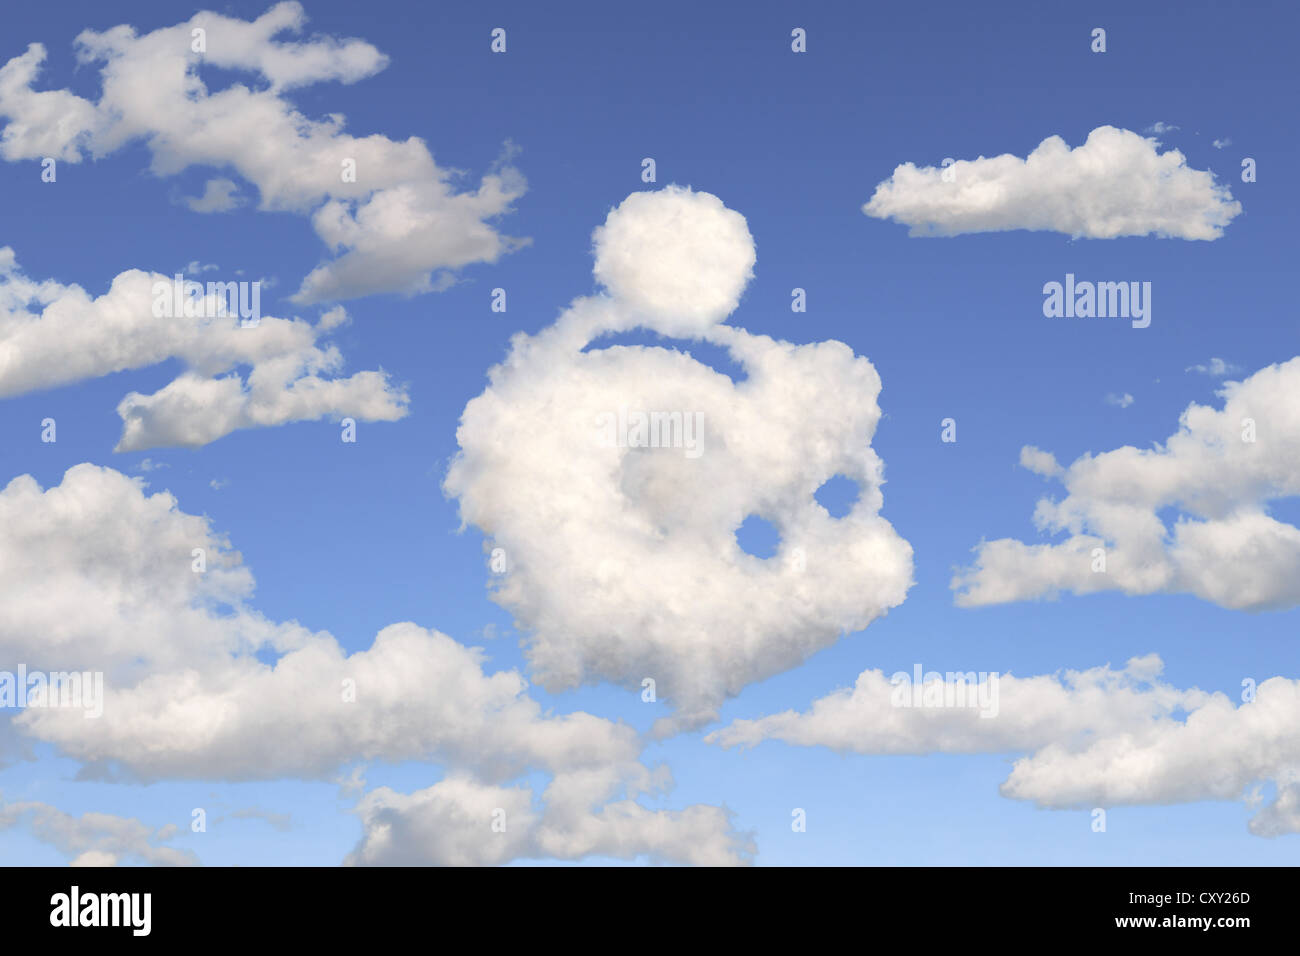 Blue sky, clouds shaped like a piggy bank, illustration - Stock Image